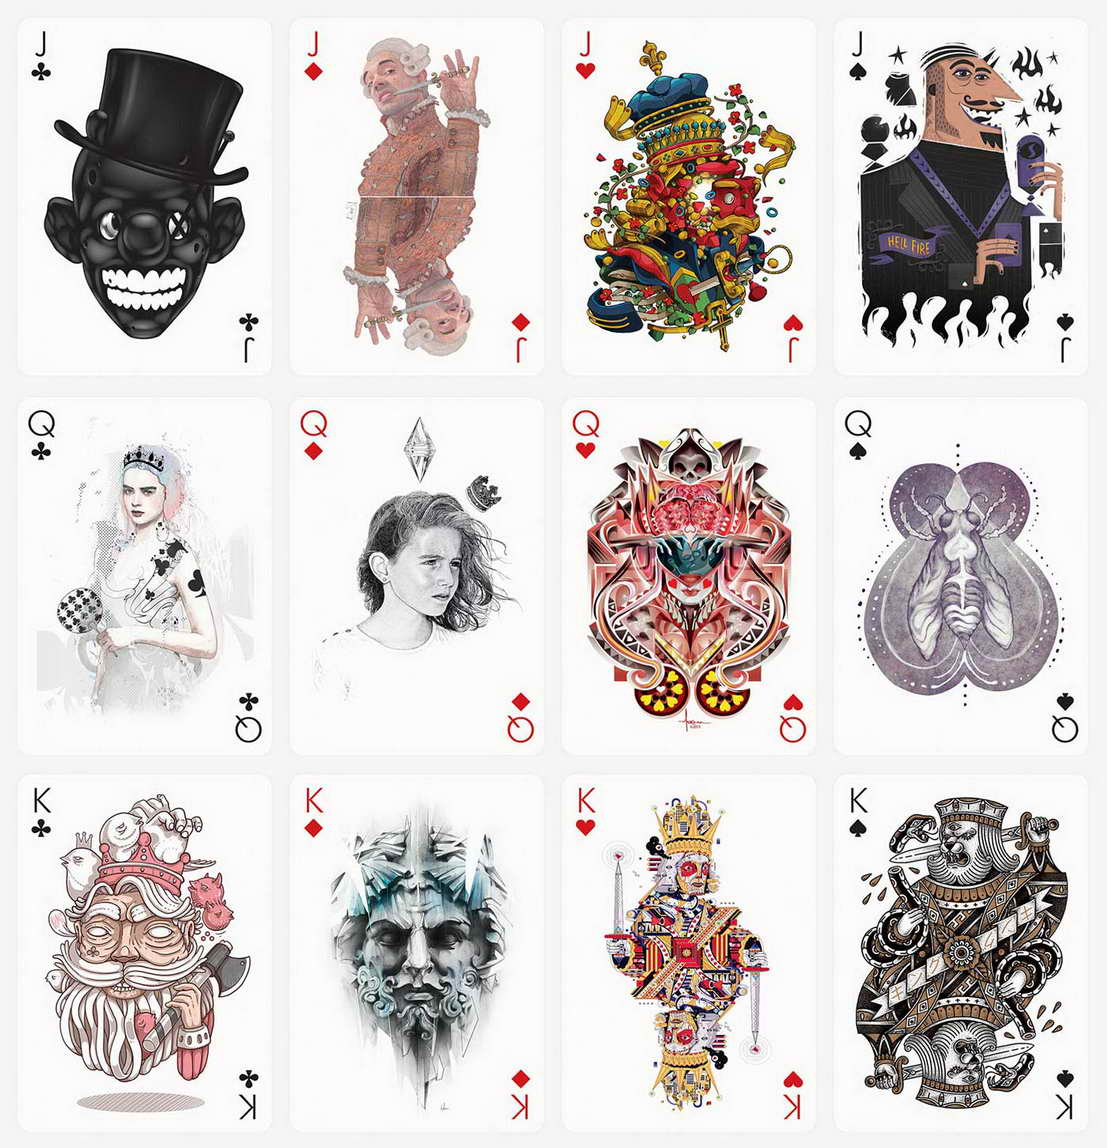 Development of playing cards